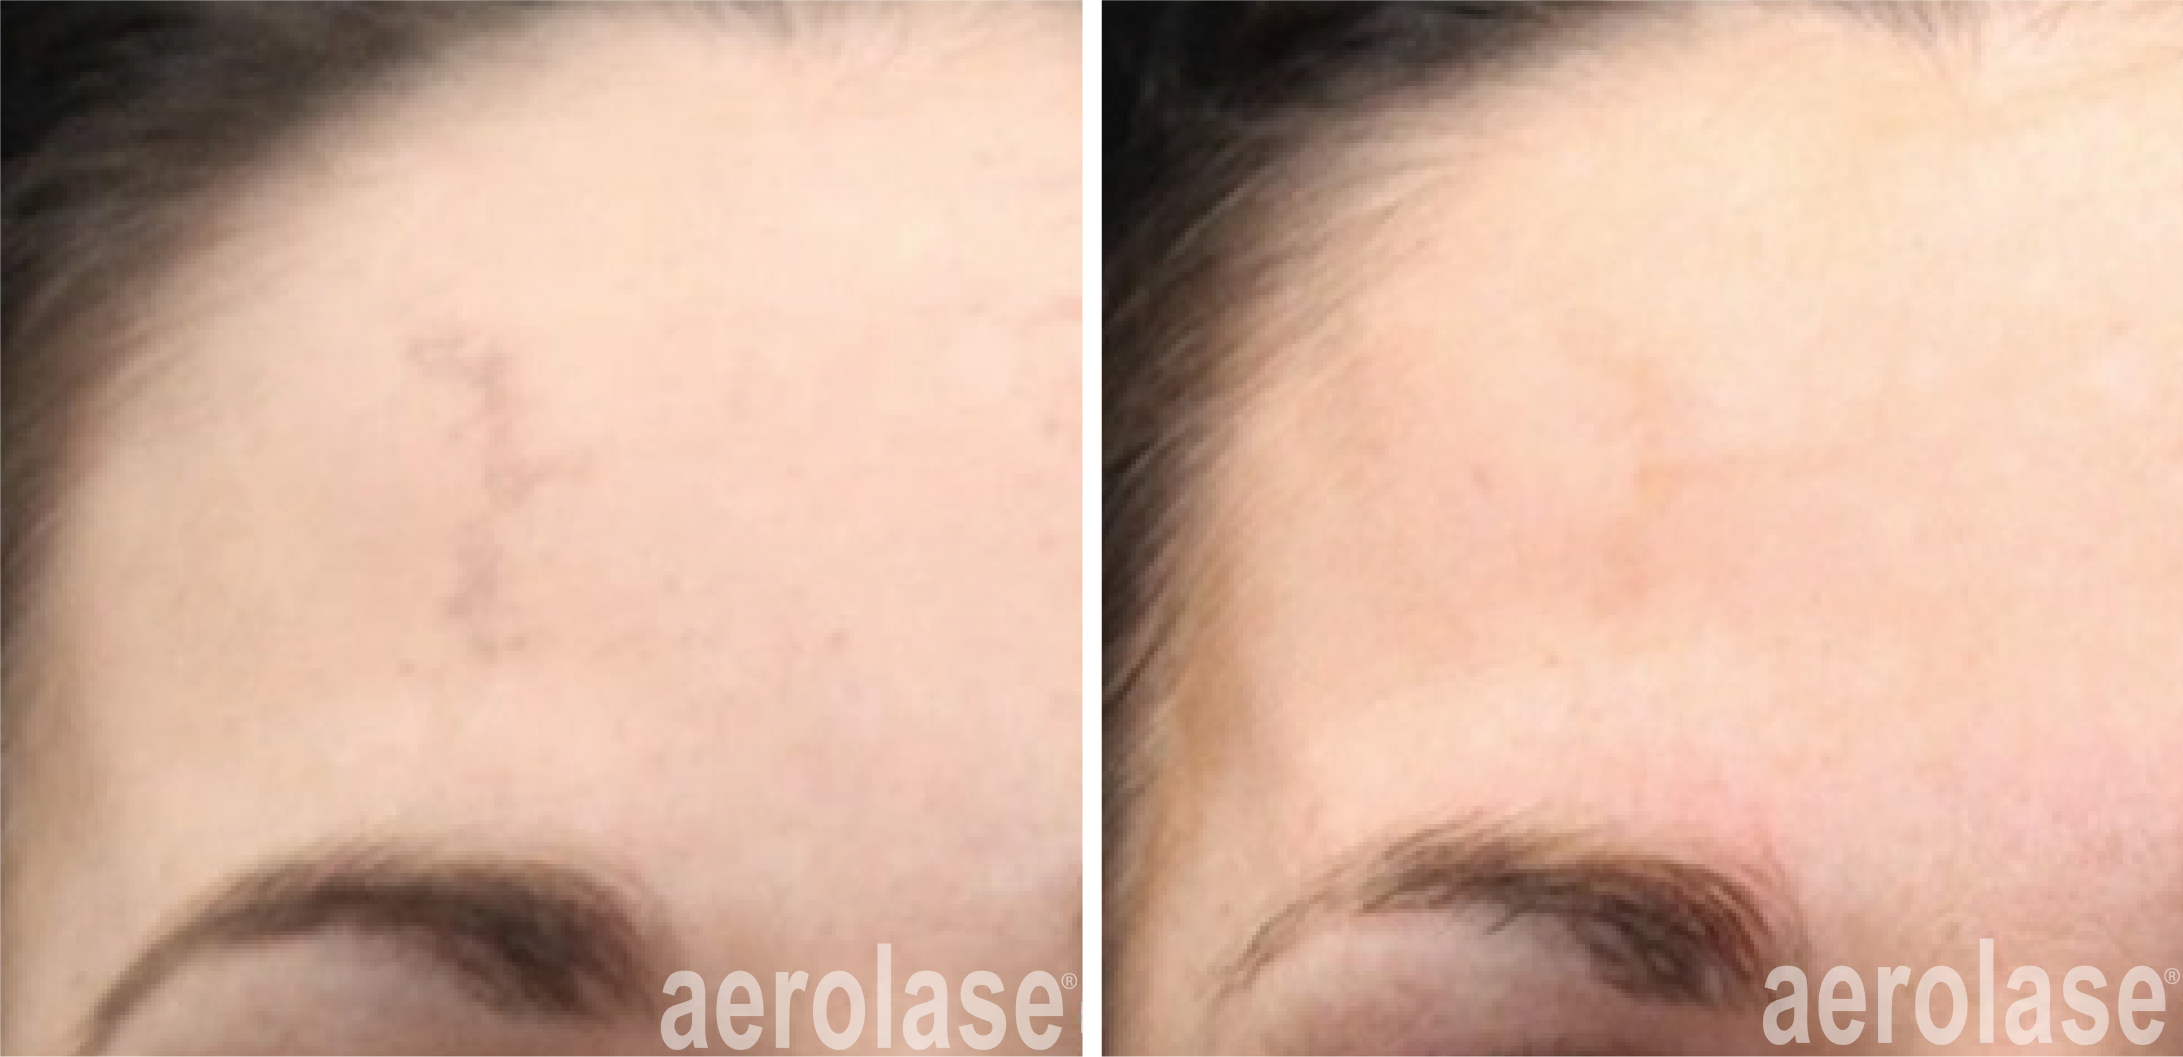 improved scar appearance after 1 treatment with neoskin in cornelius nc